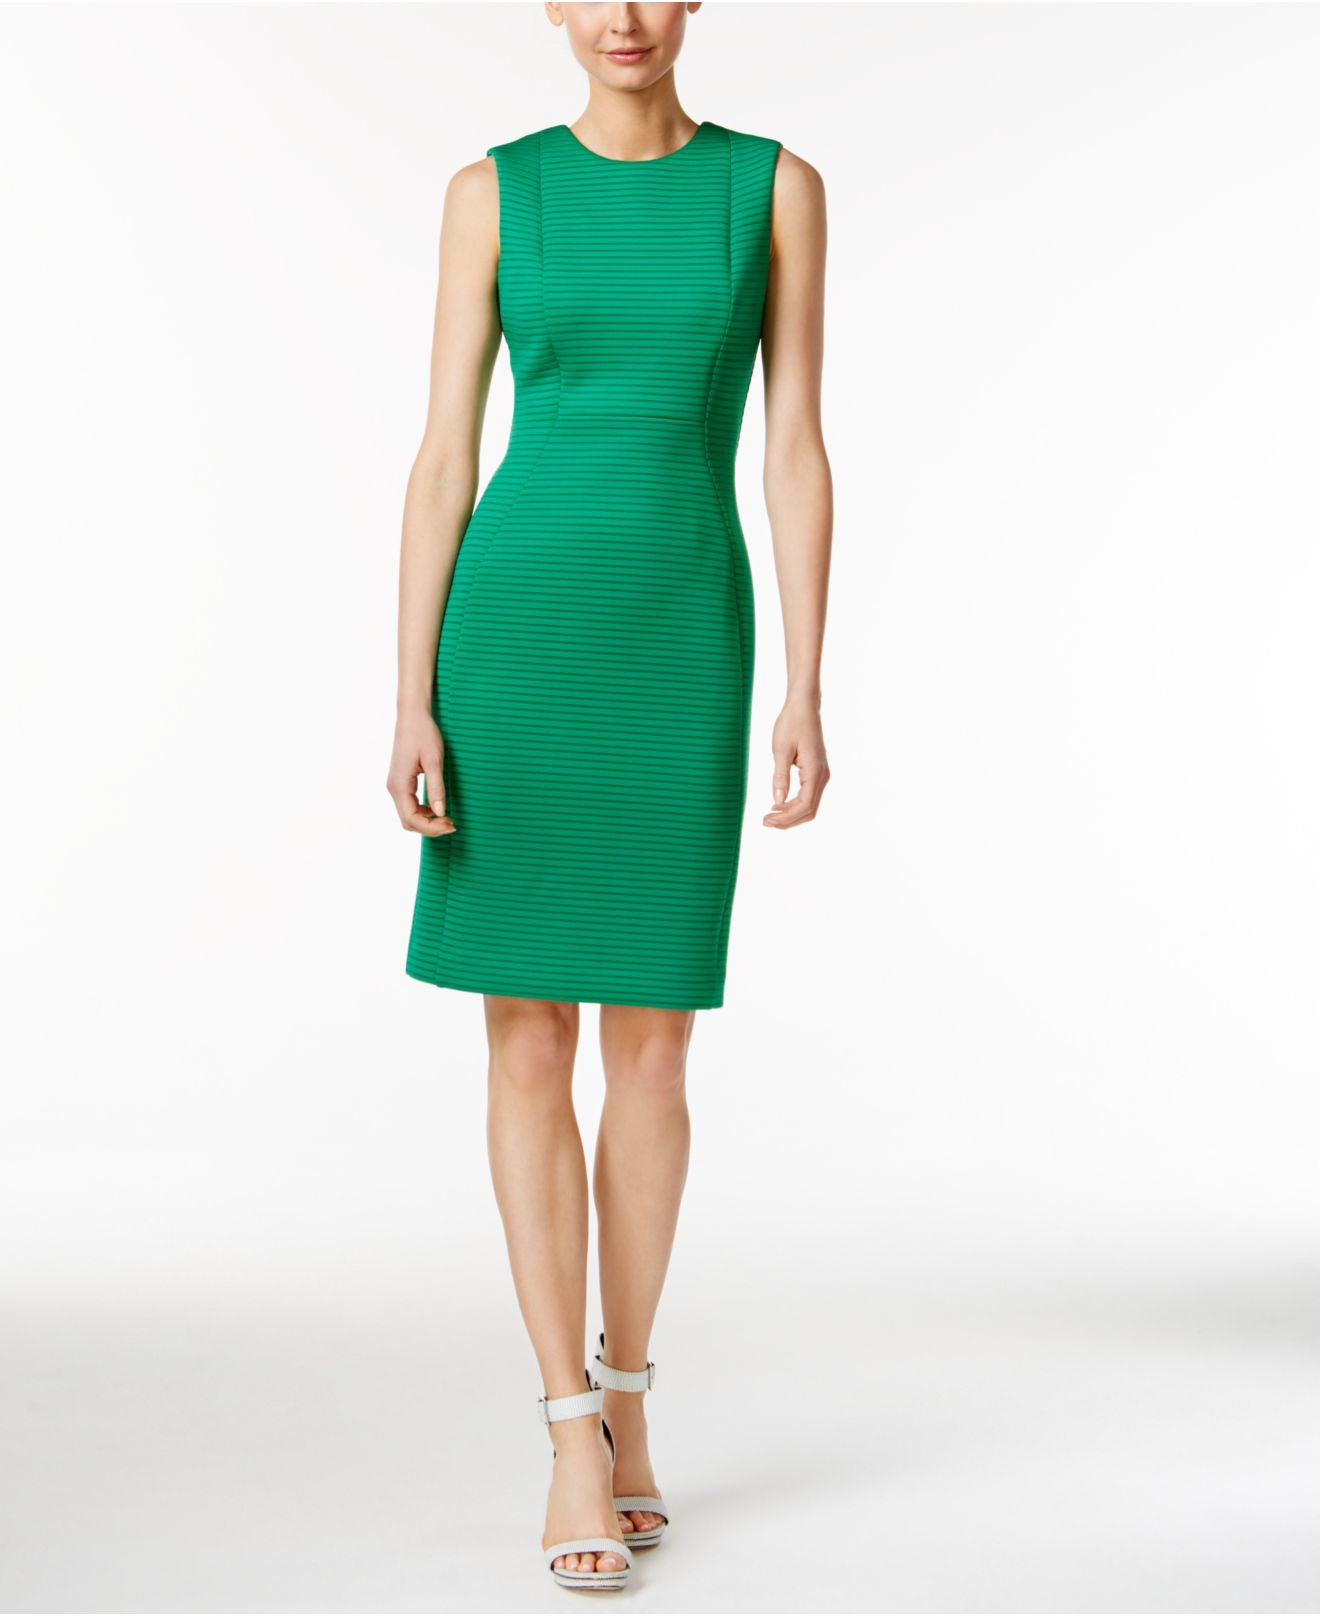 08540113adf Calvin Klein Sleeveless Striped Sheath Dress in Green - Lyst